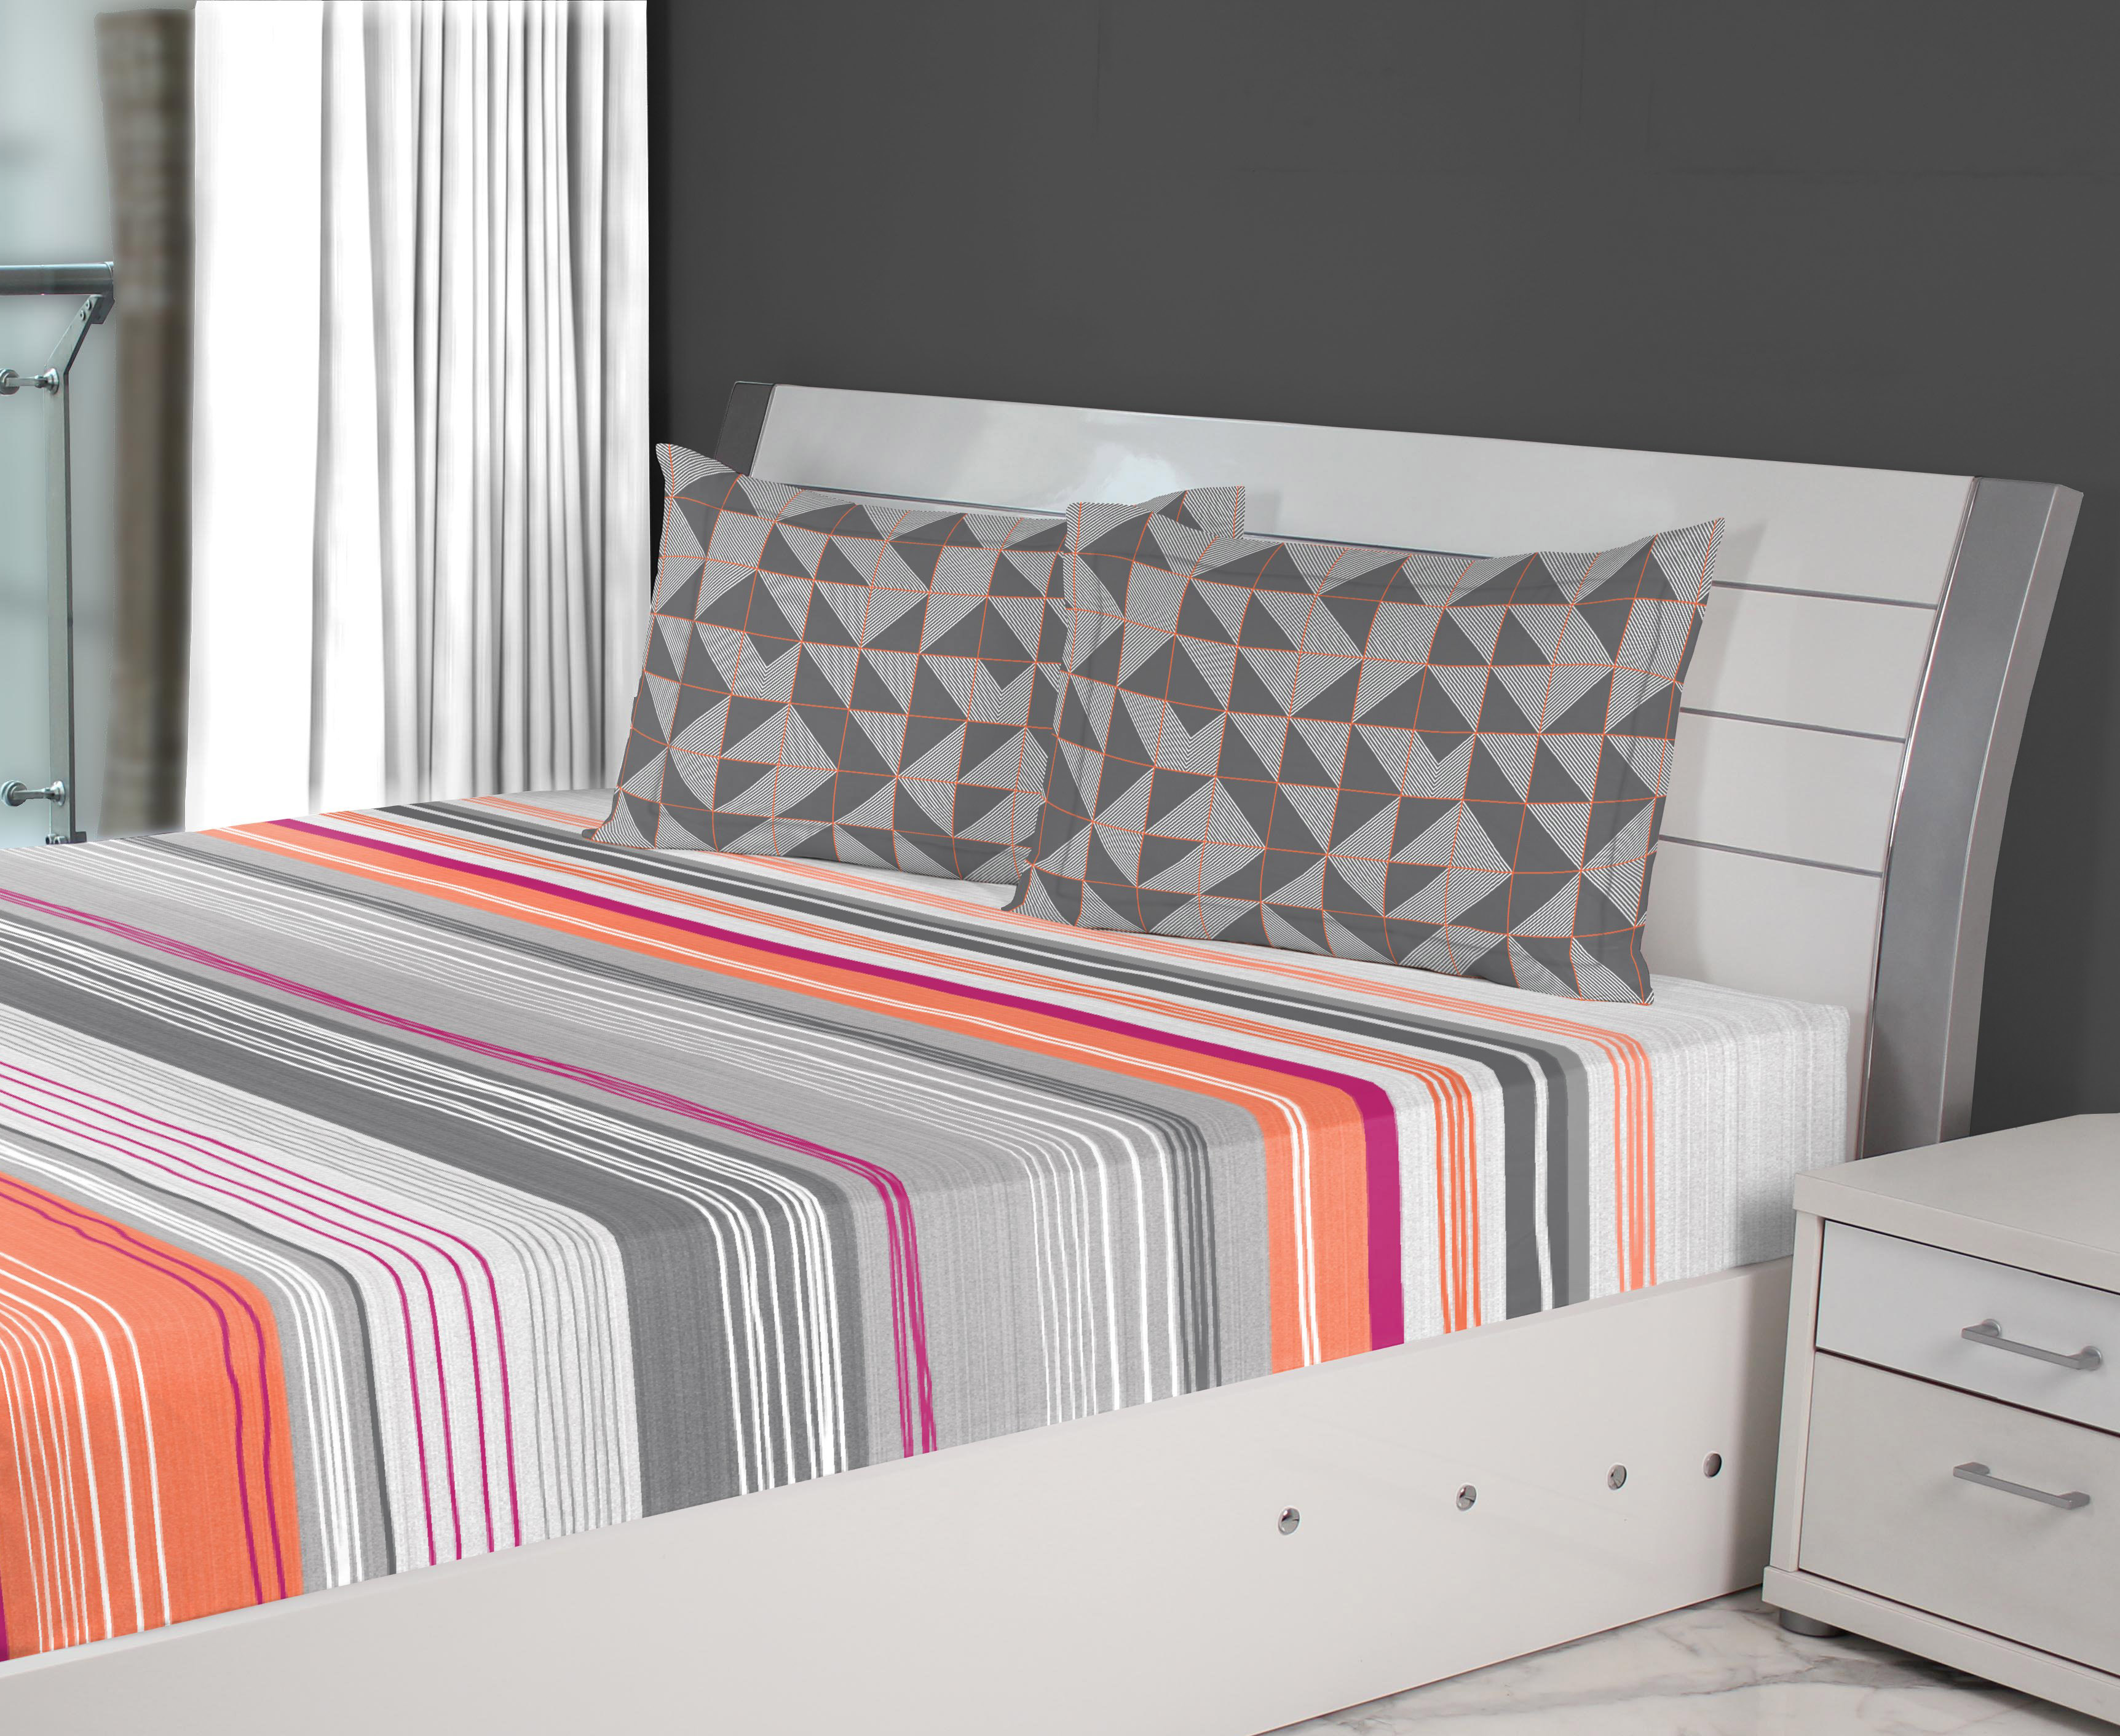 Emilia Cotton Double Bedsheets in Charcoal Coral Colour by Living Essence